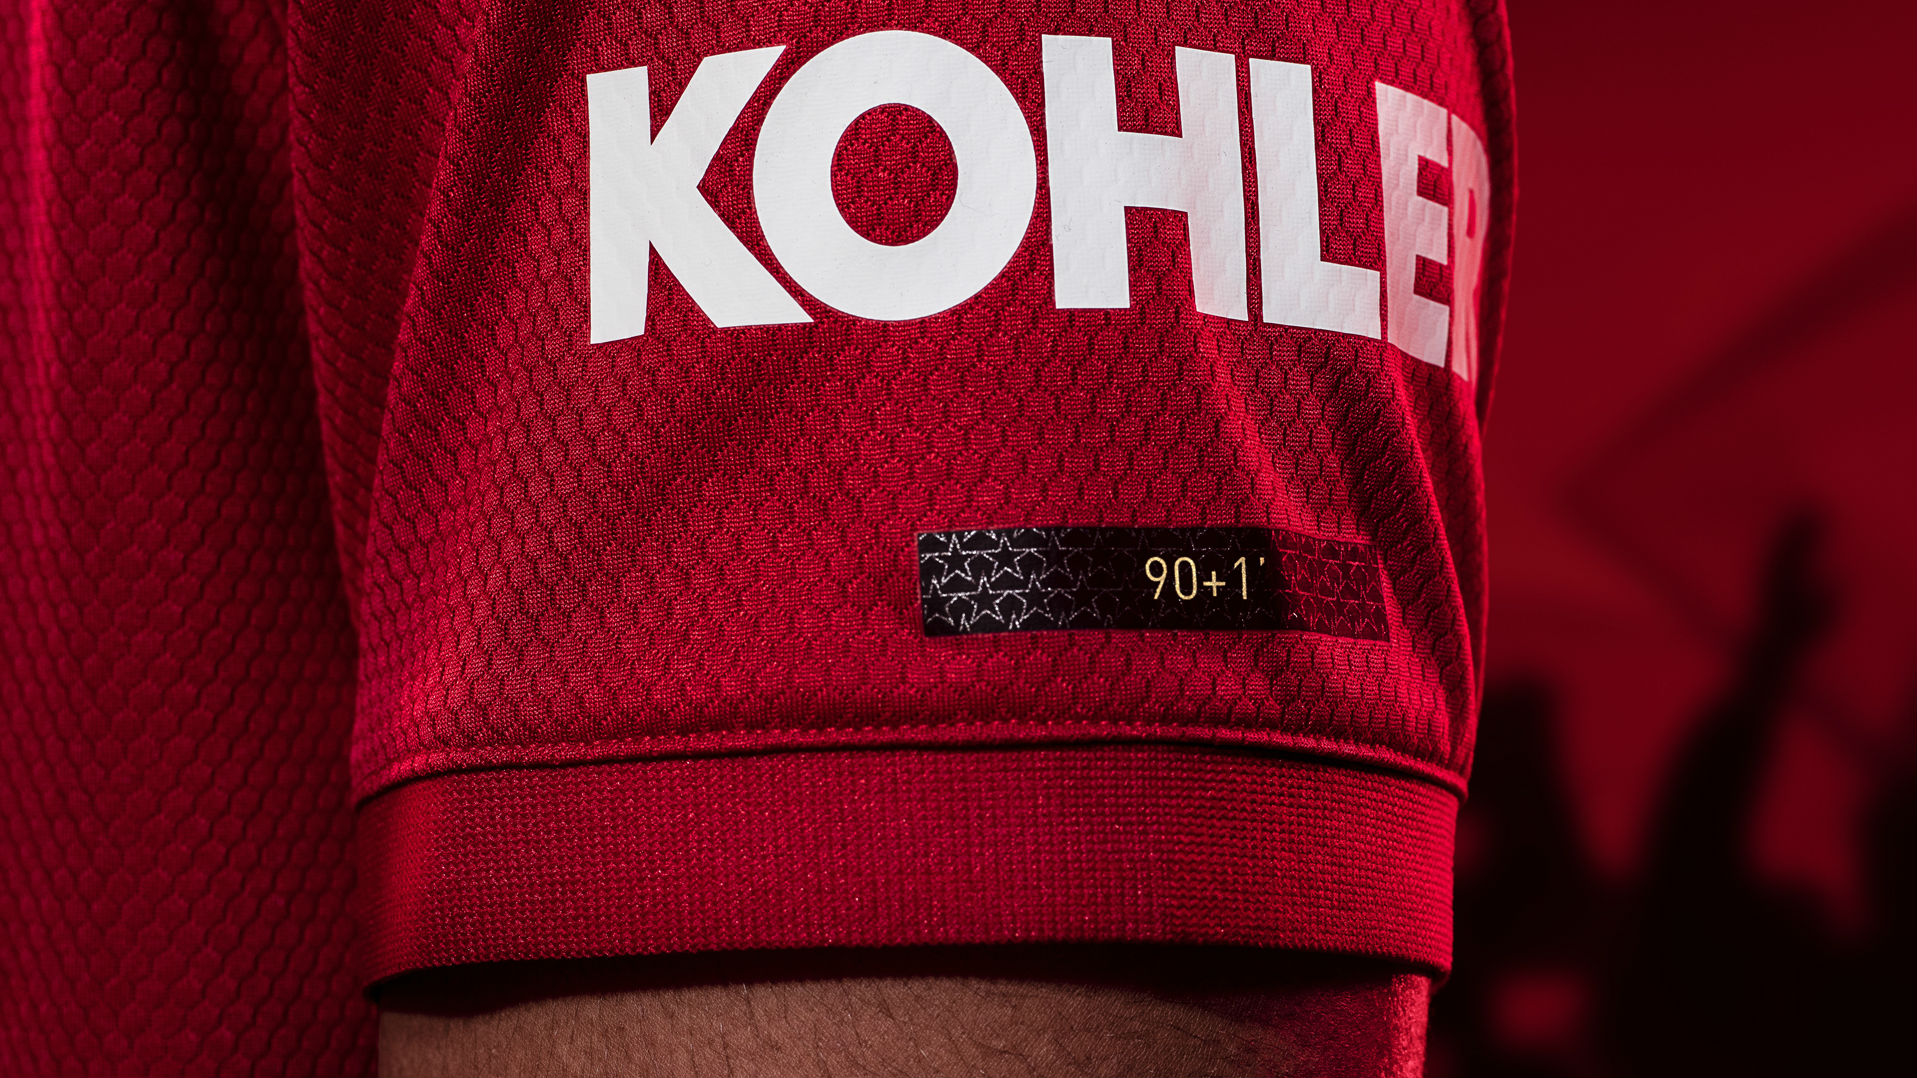 Manchester United 2019-20 kit sleeve